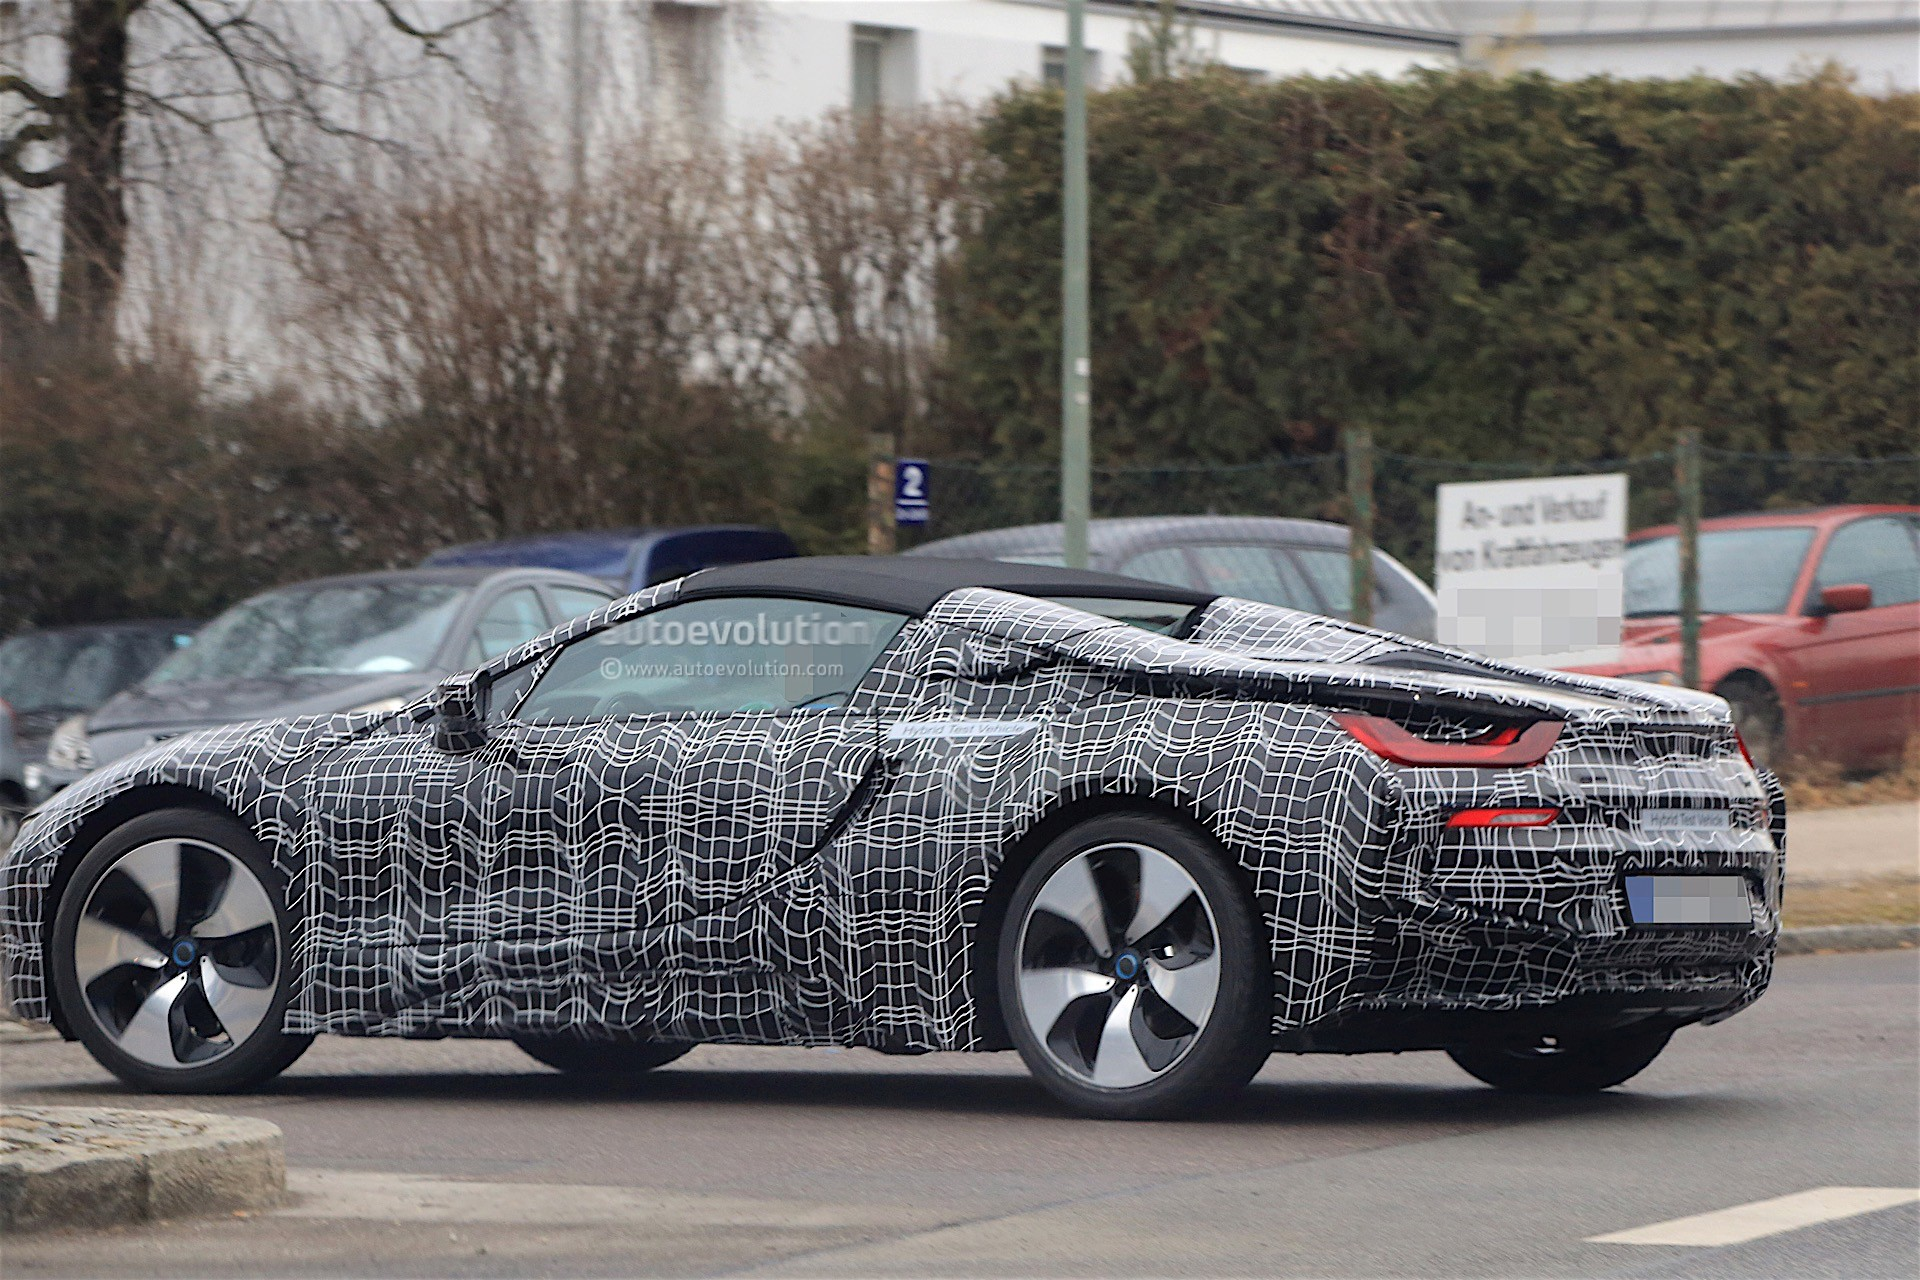 2018 Bmw I8 Roadster Described In Detail By Private Reveal Event